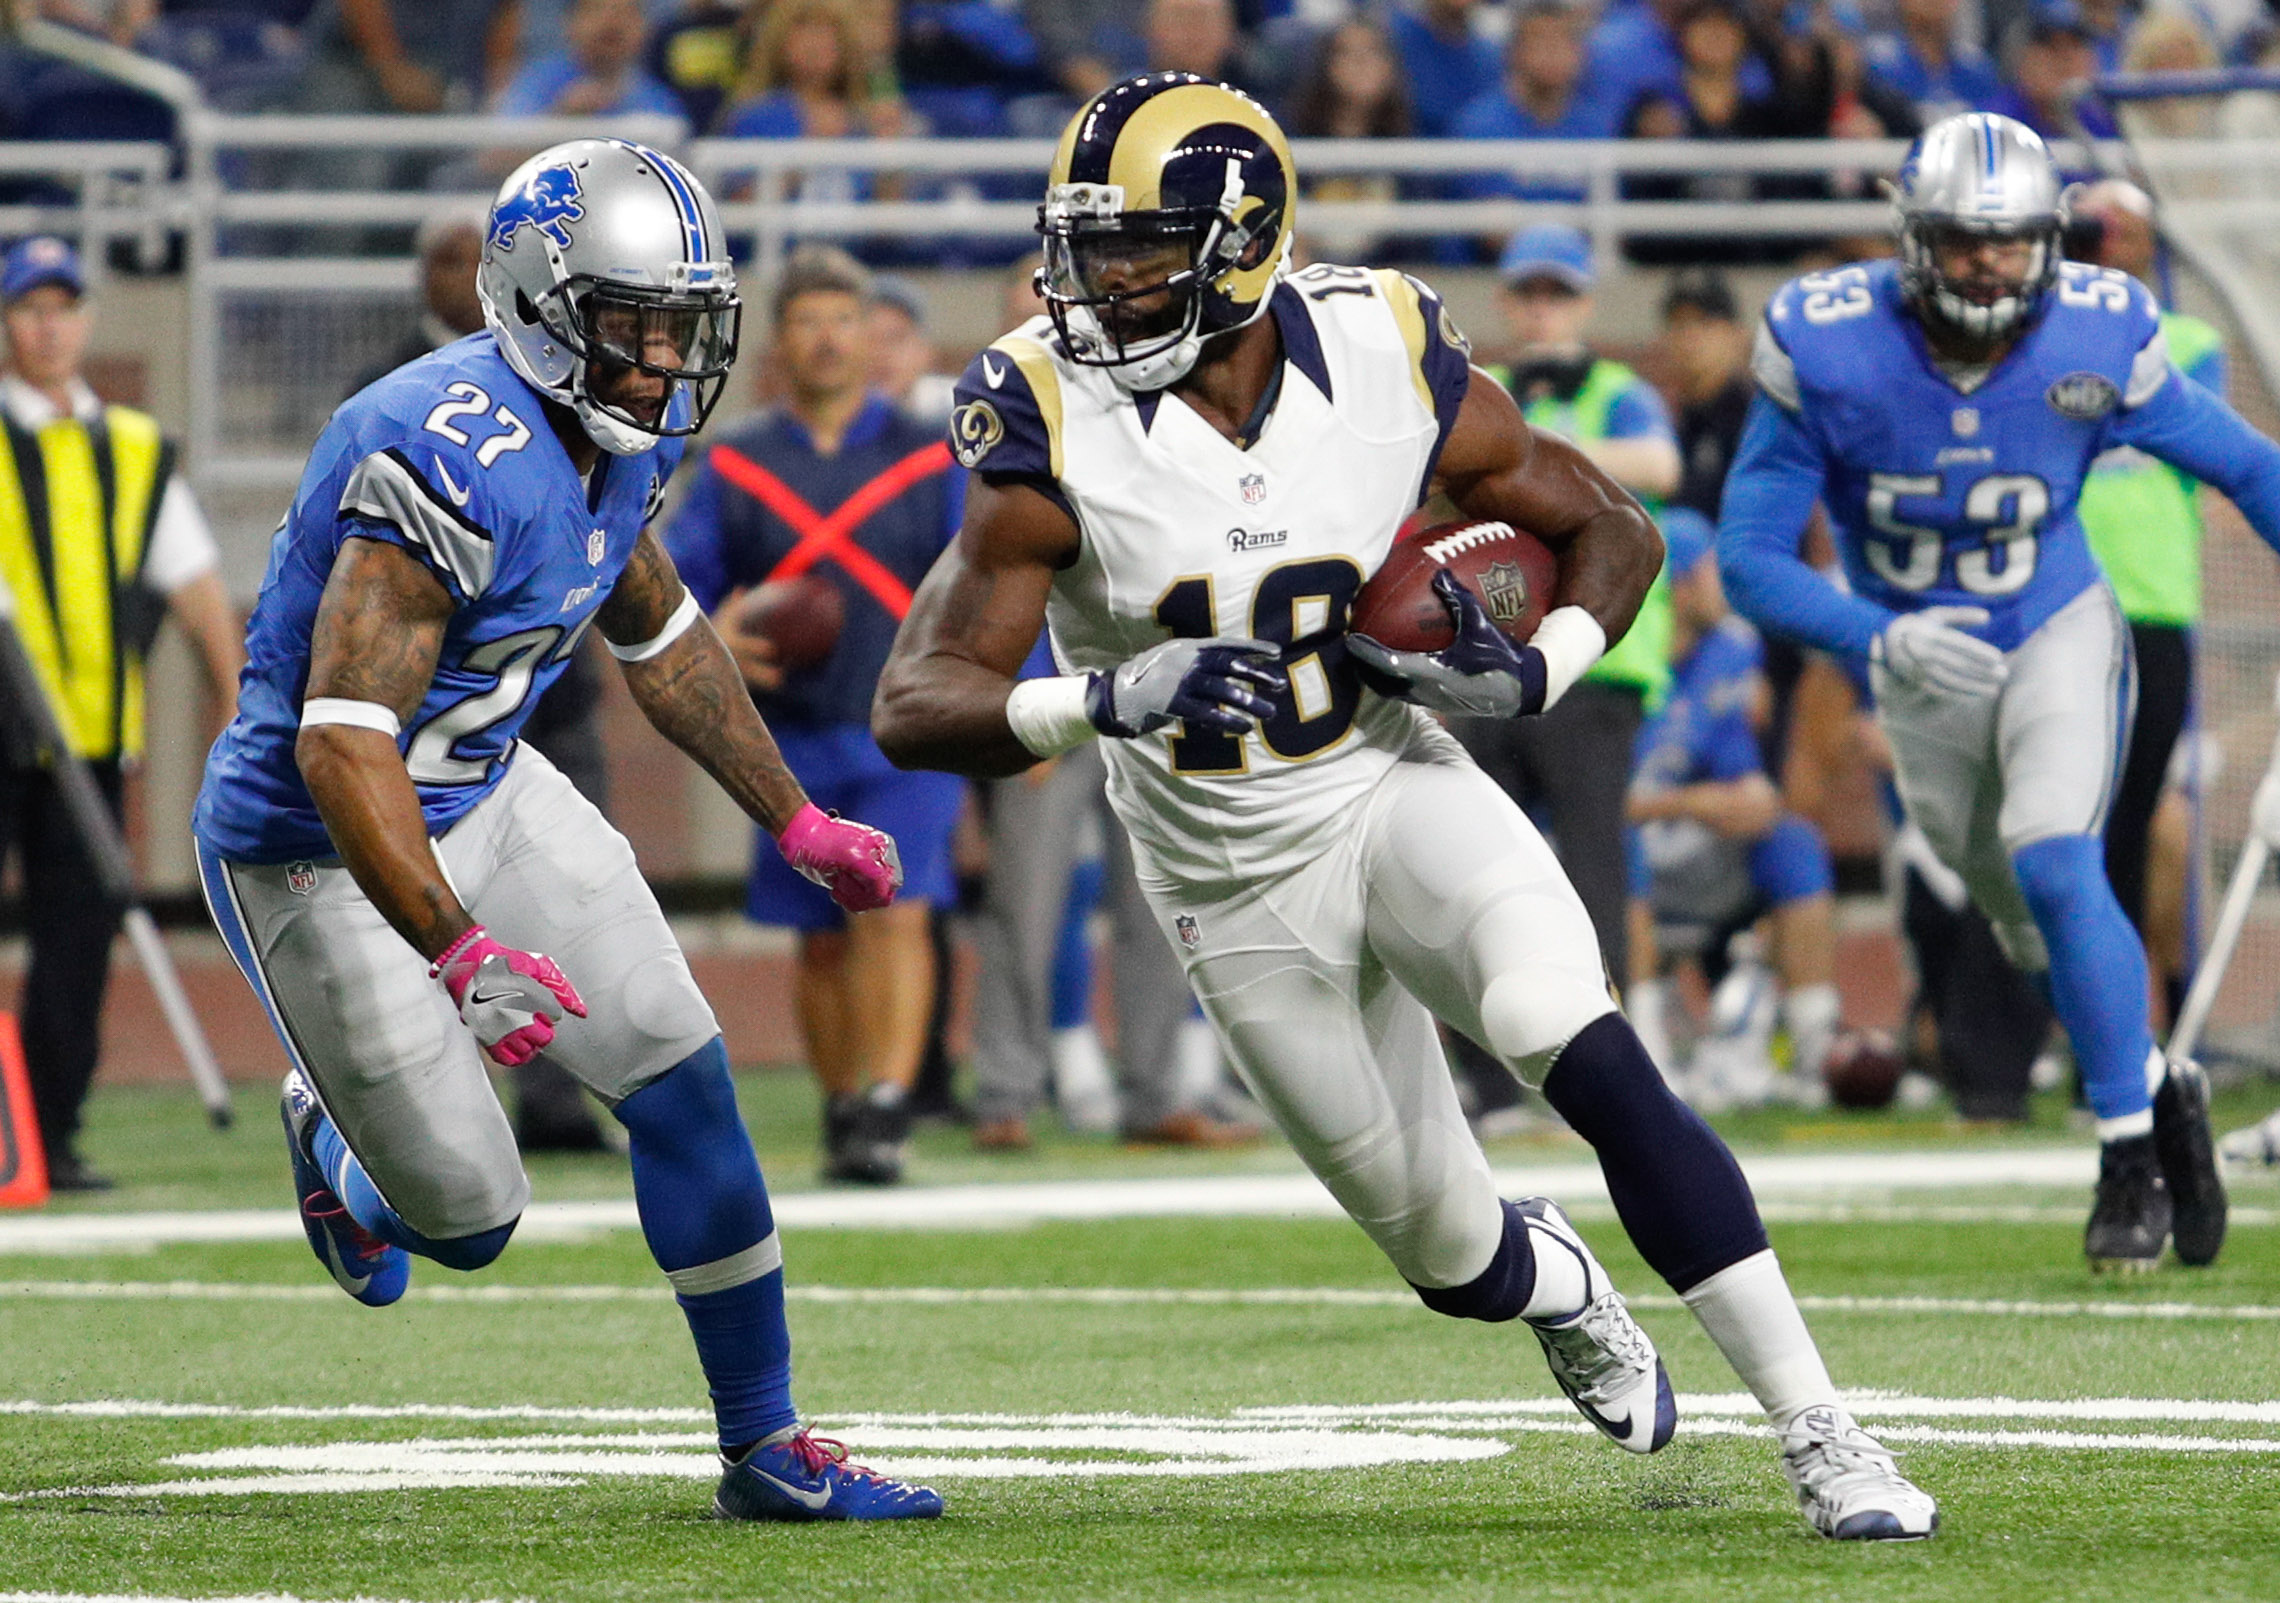 9636758-nfl-los-angeles-rams-at-detroit-lions